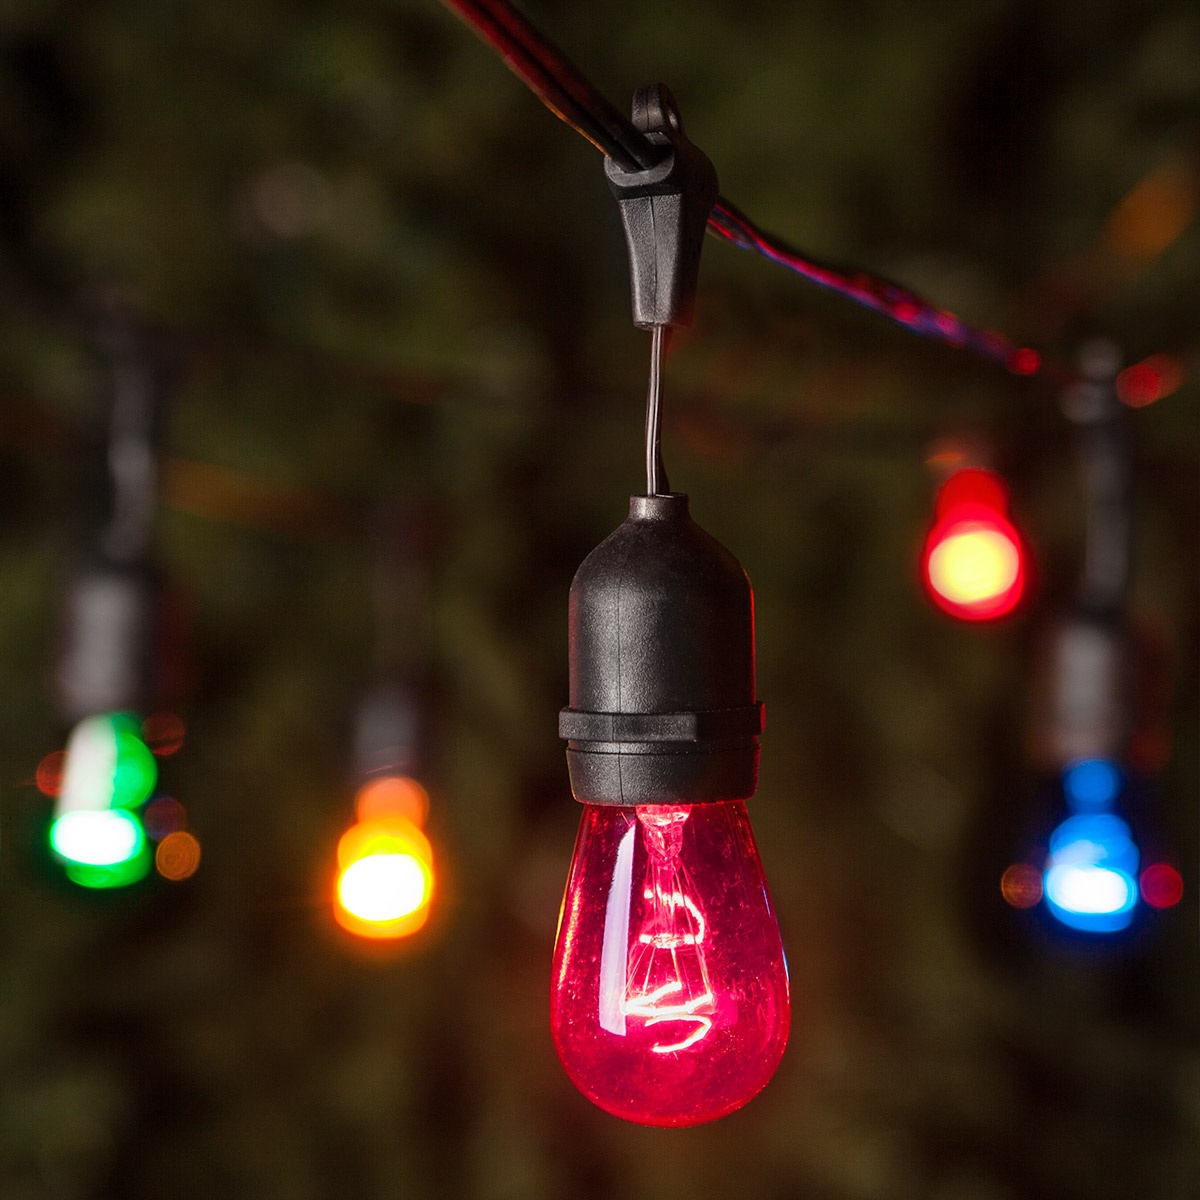 Captivating 54u0027 Commercial Patio String With 24 Suspended S14 Multicolor Party Lights